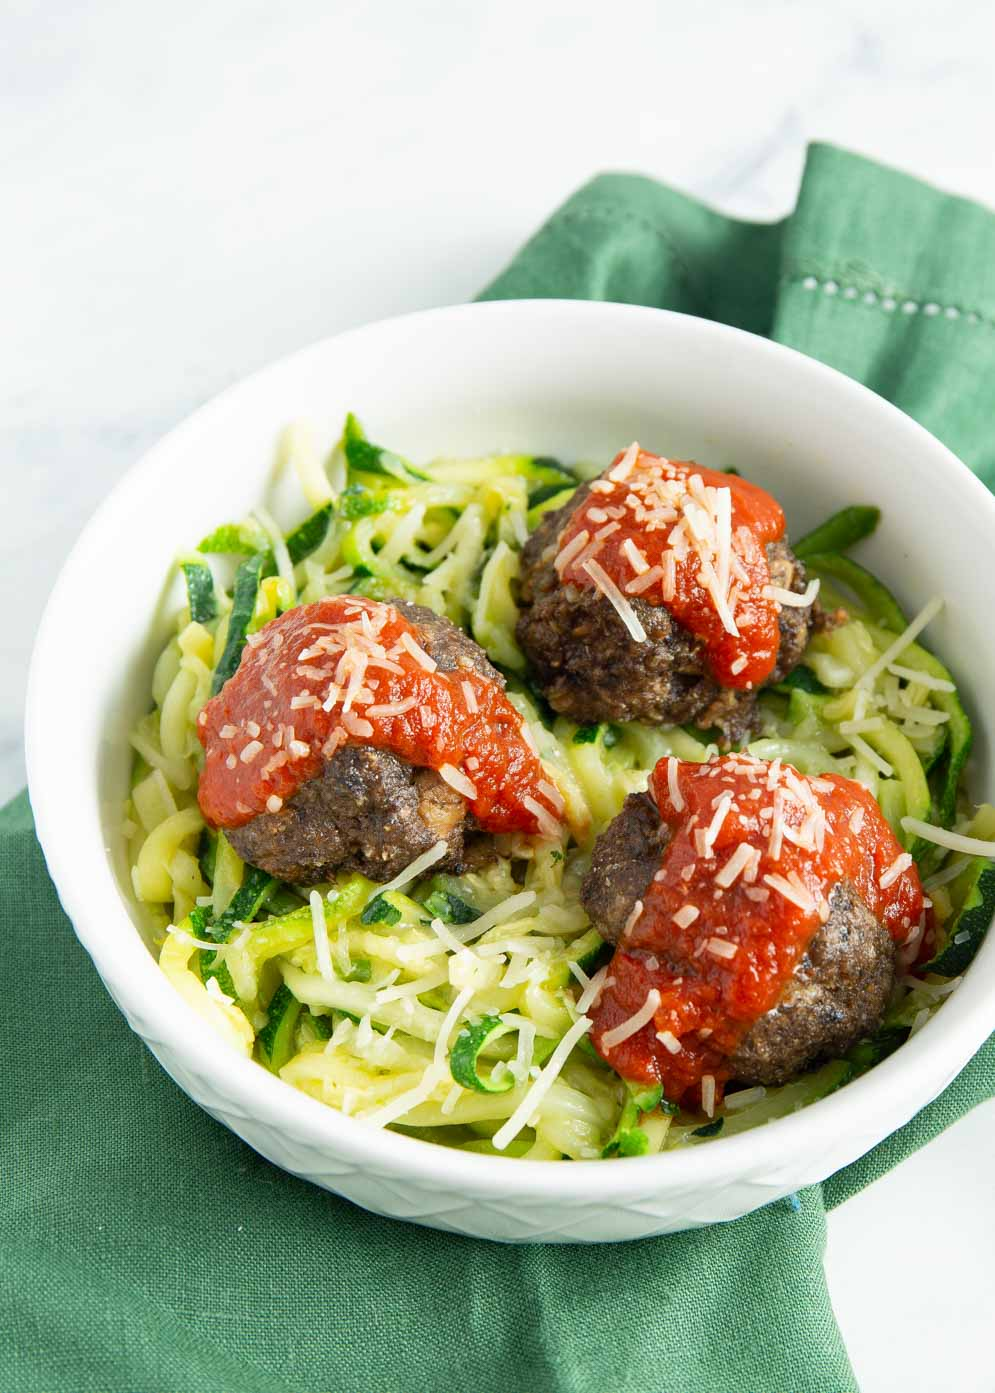 Vegetarian Meatless Meatballs with red sauce on top in a white bowl a top greens